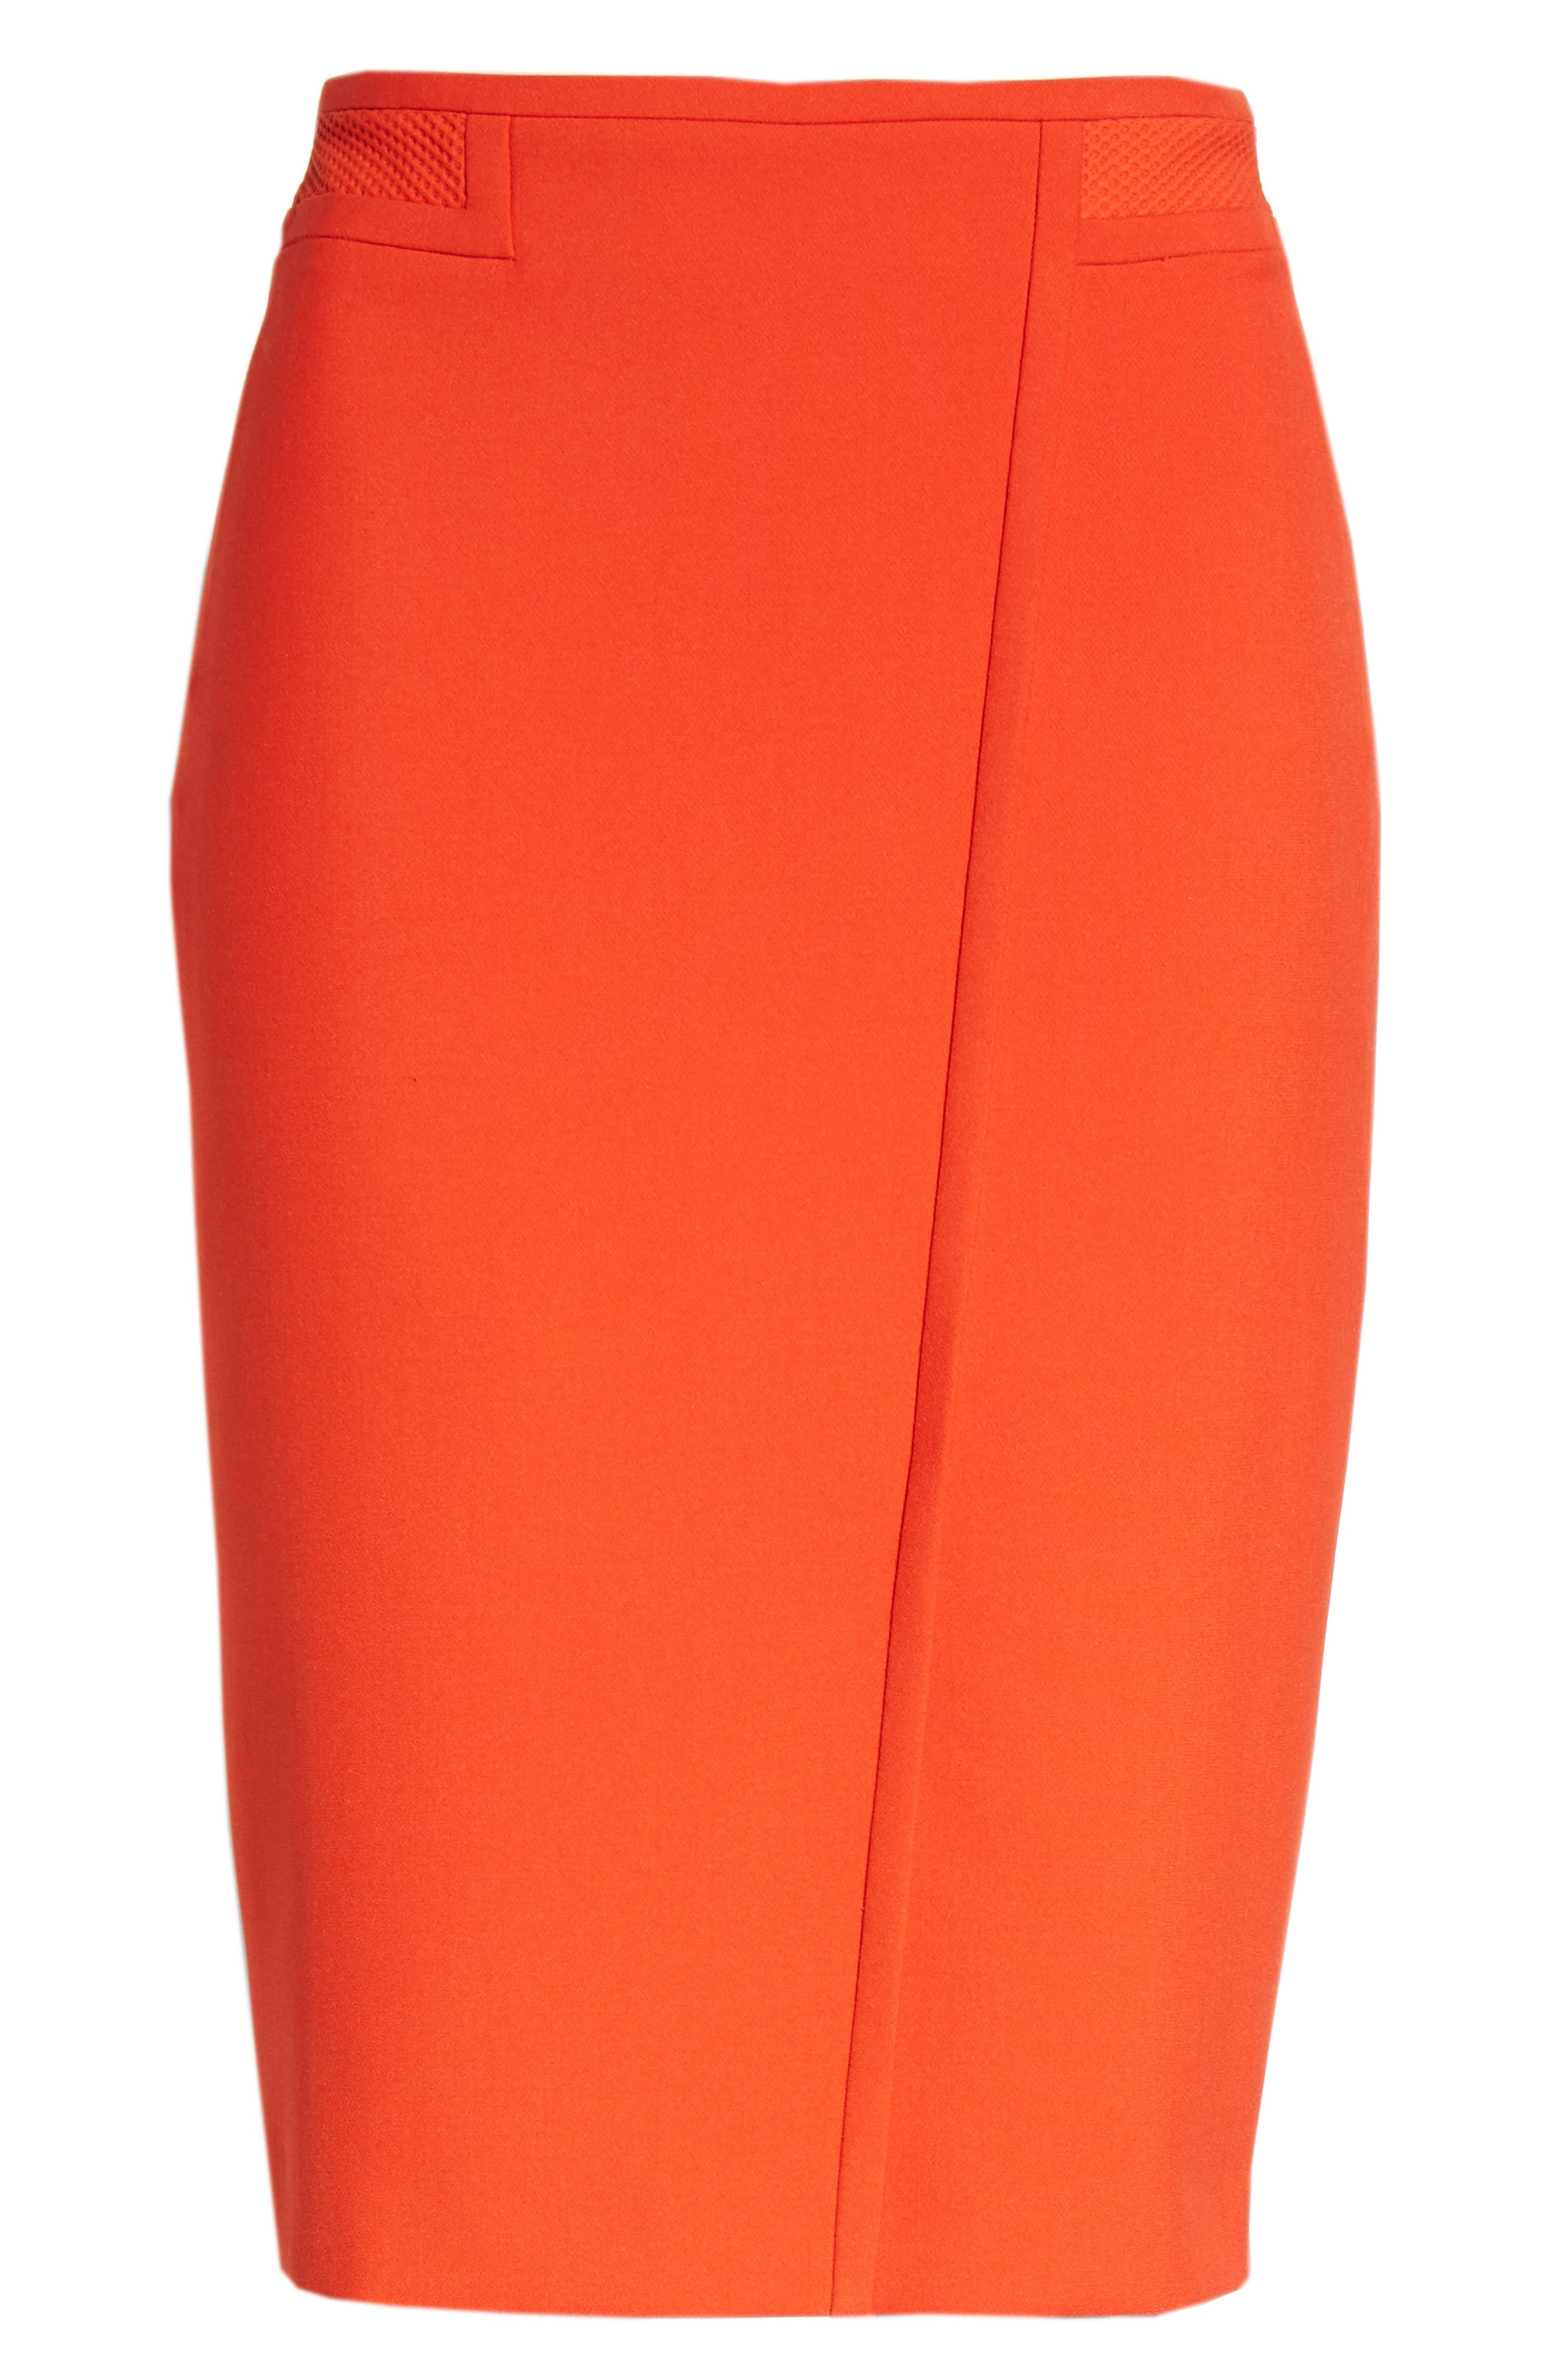 Vadama Ponte Pencil Skirt,                             Alternate thumbnail 6, color,                             Sunset Orange